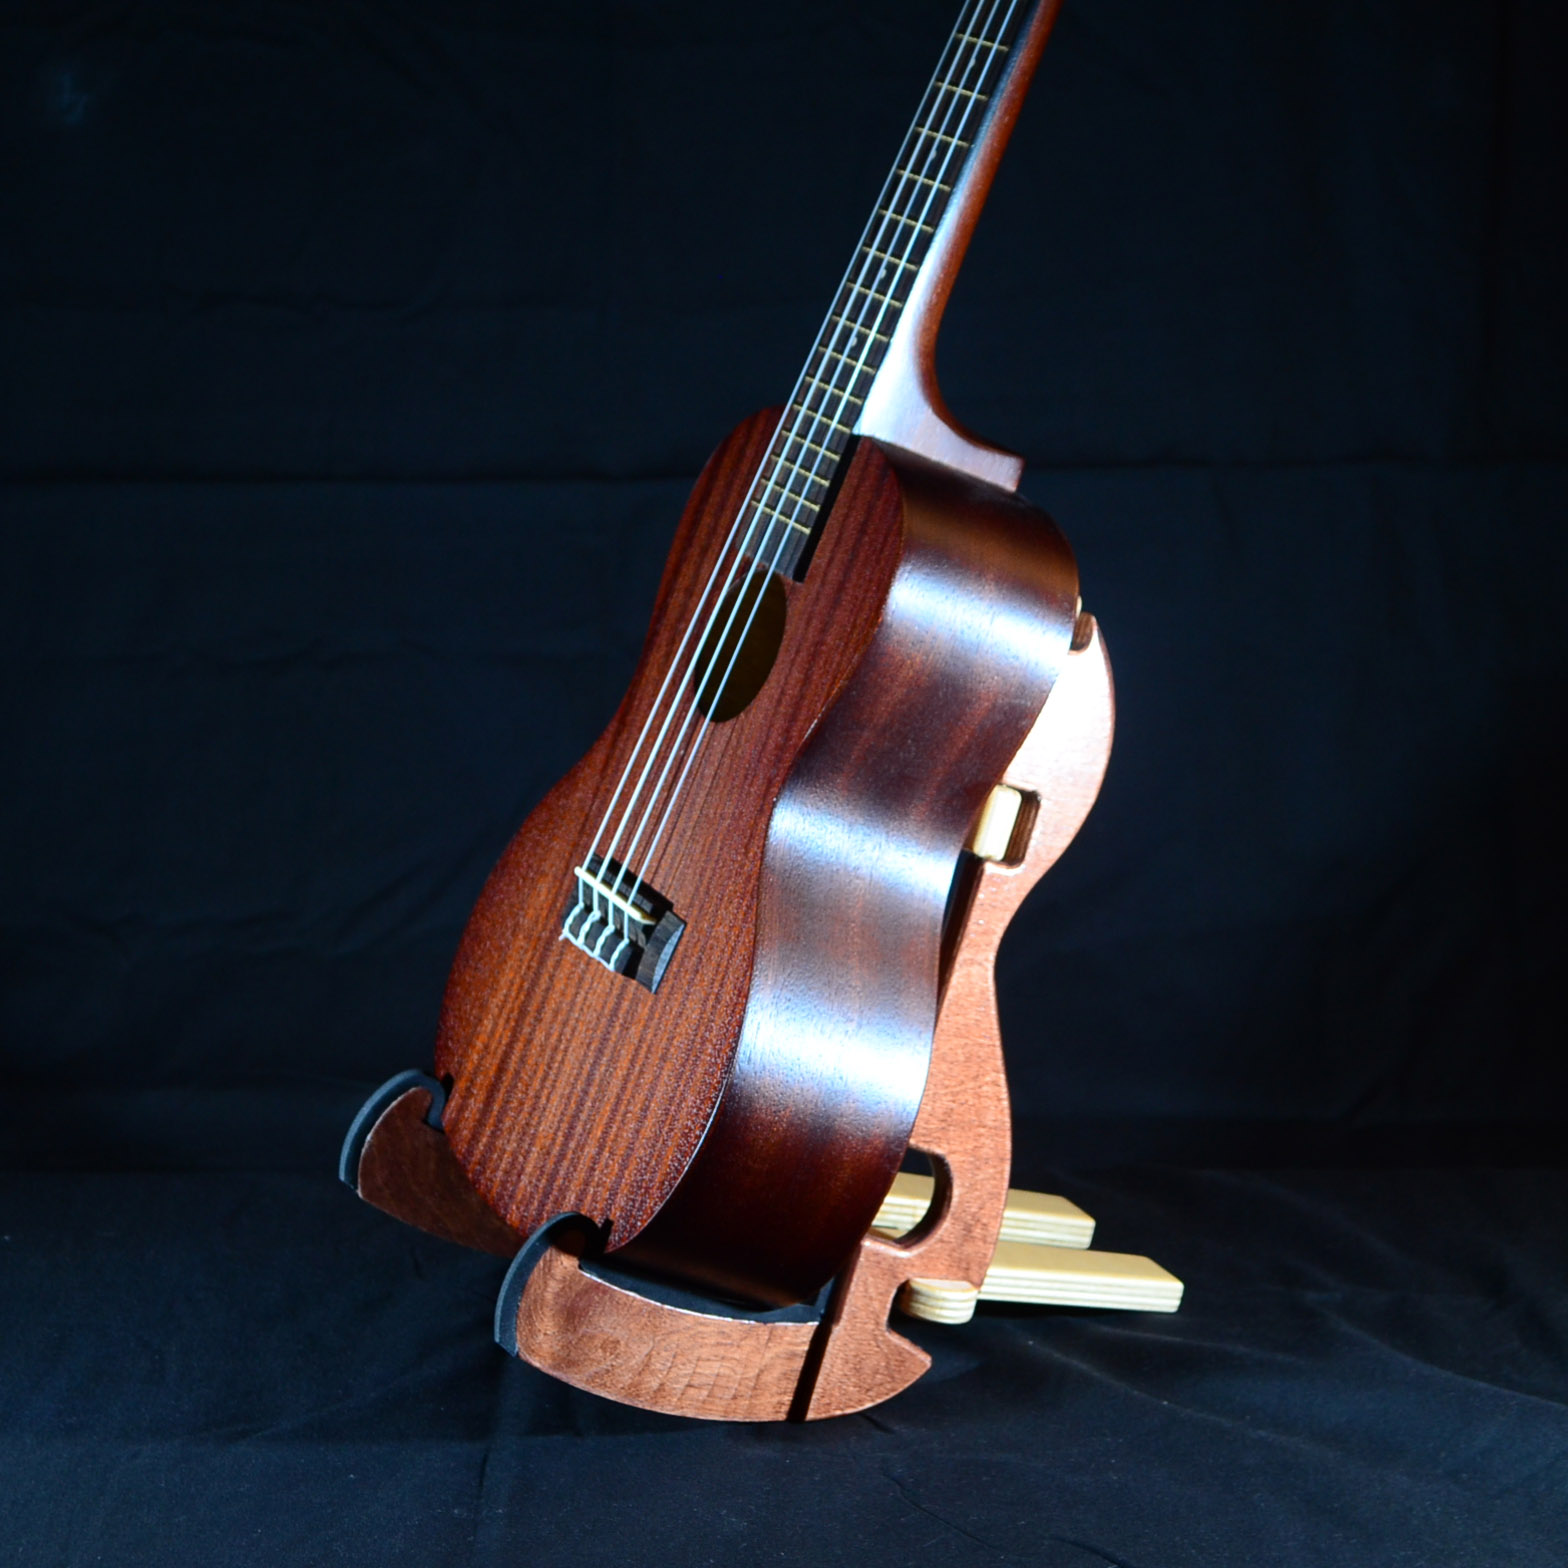 12 Inch tall K-Stand instrument stand for Tenor and Baritone Ukuleles. Also available in 10 Inch tall size for Concert and Soprano Ukuleles.